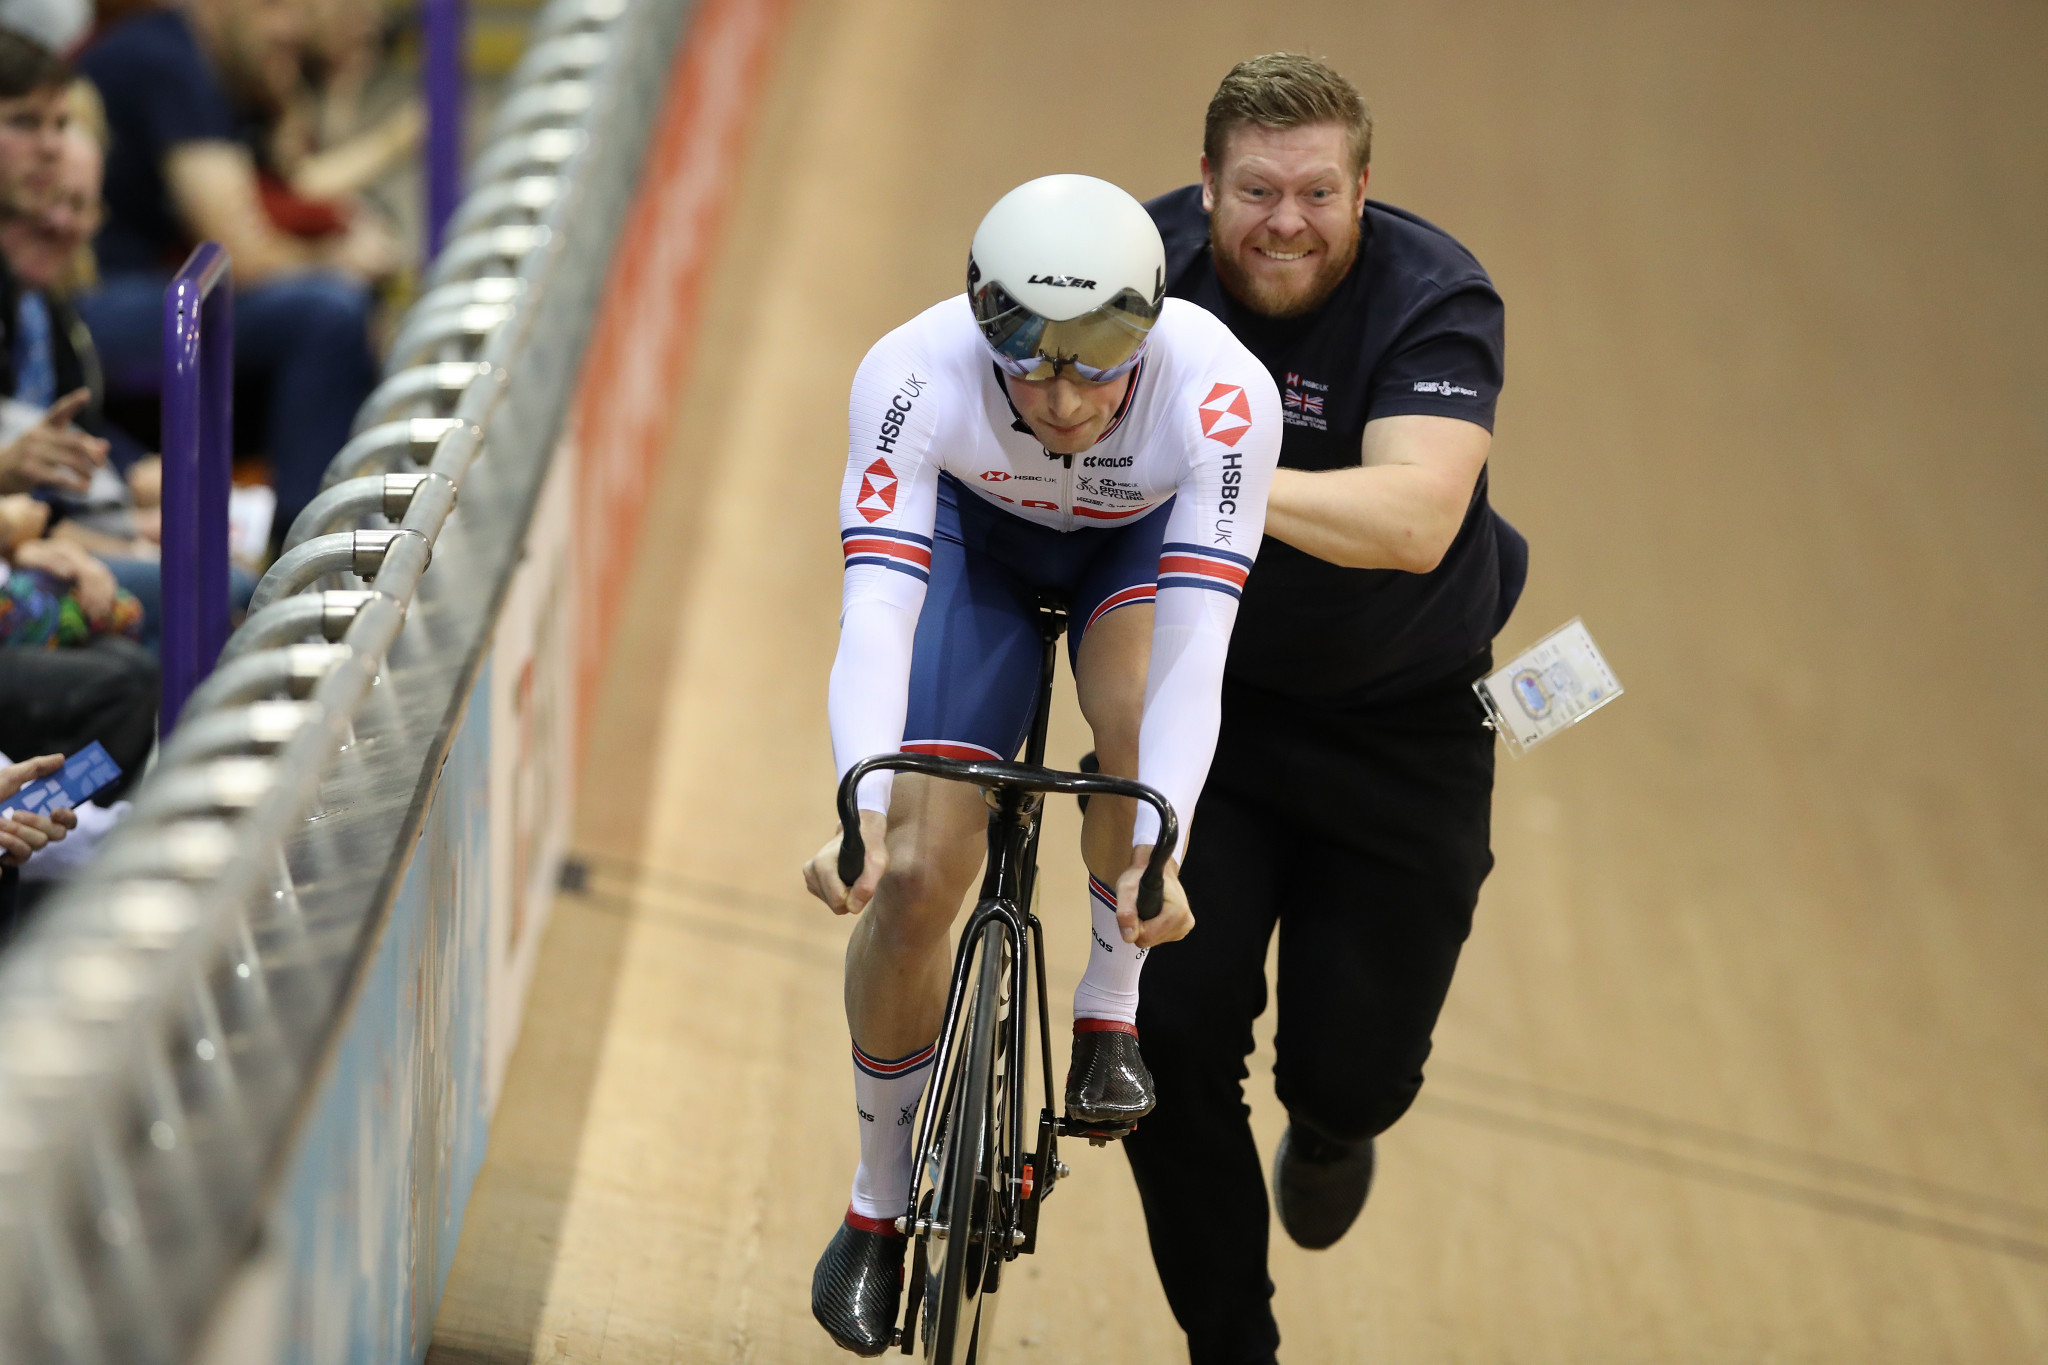 """British Cycling sack sprint coach over """"inappropriate relationships"""" with riders"""